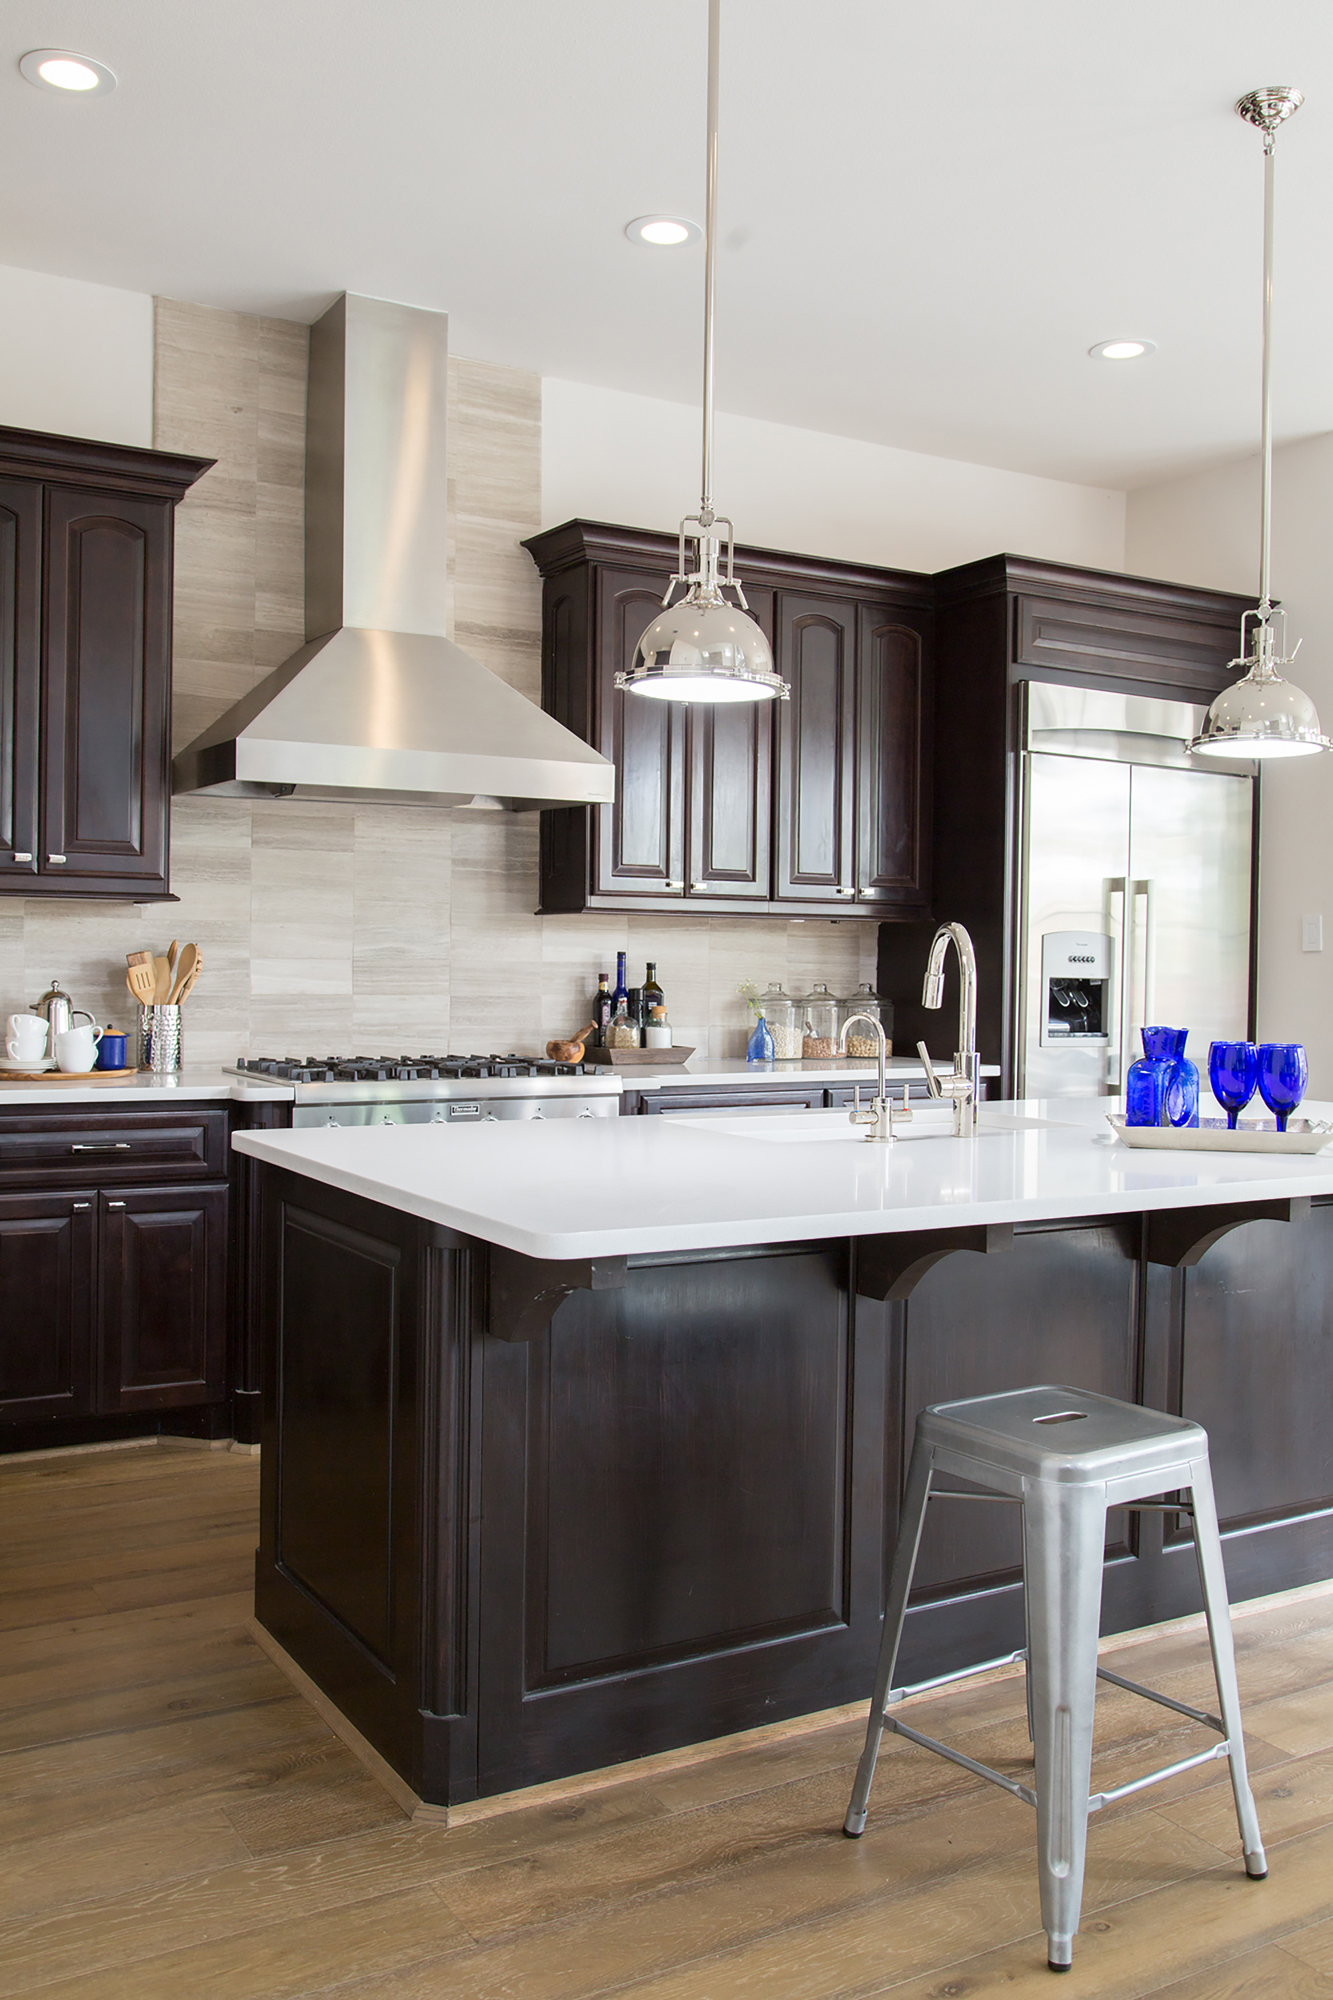 kitchen remodel; Island; stool; cabinetry; sink; lighting | Interior Designer: Carla Aston / Photographer: Tori Aston